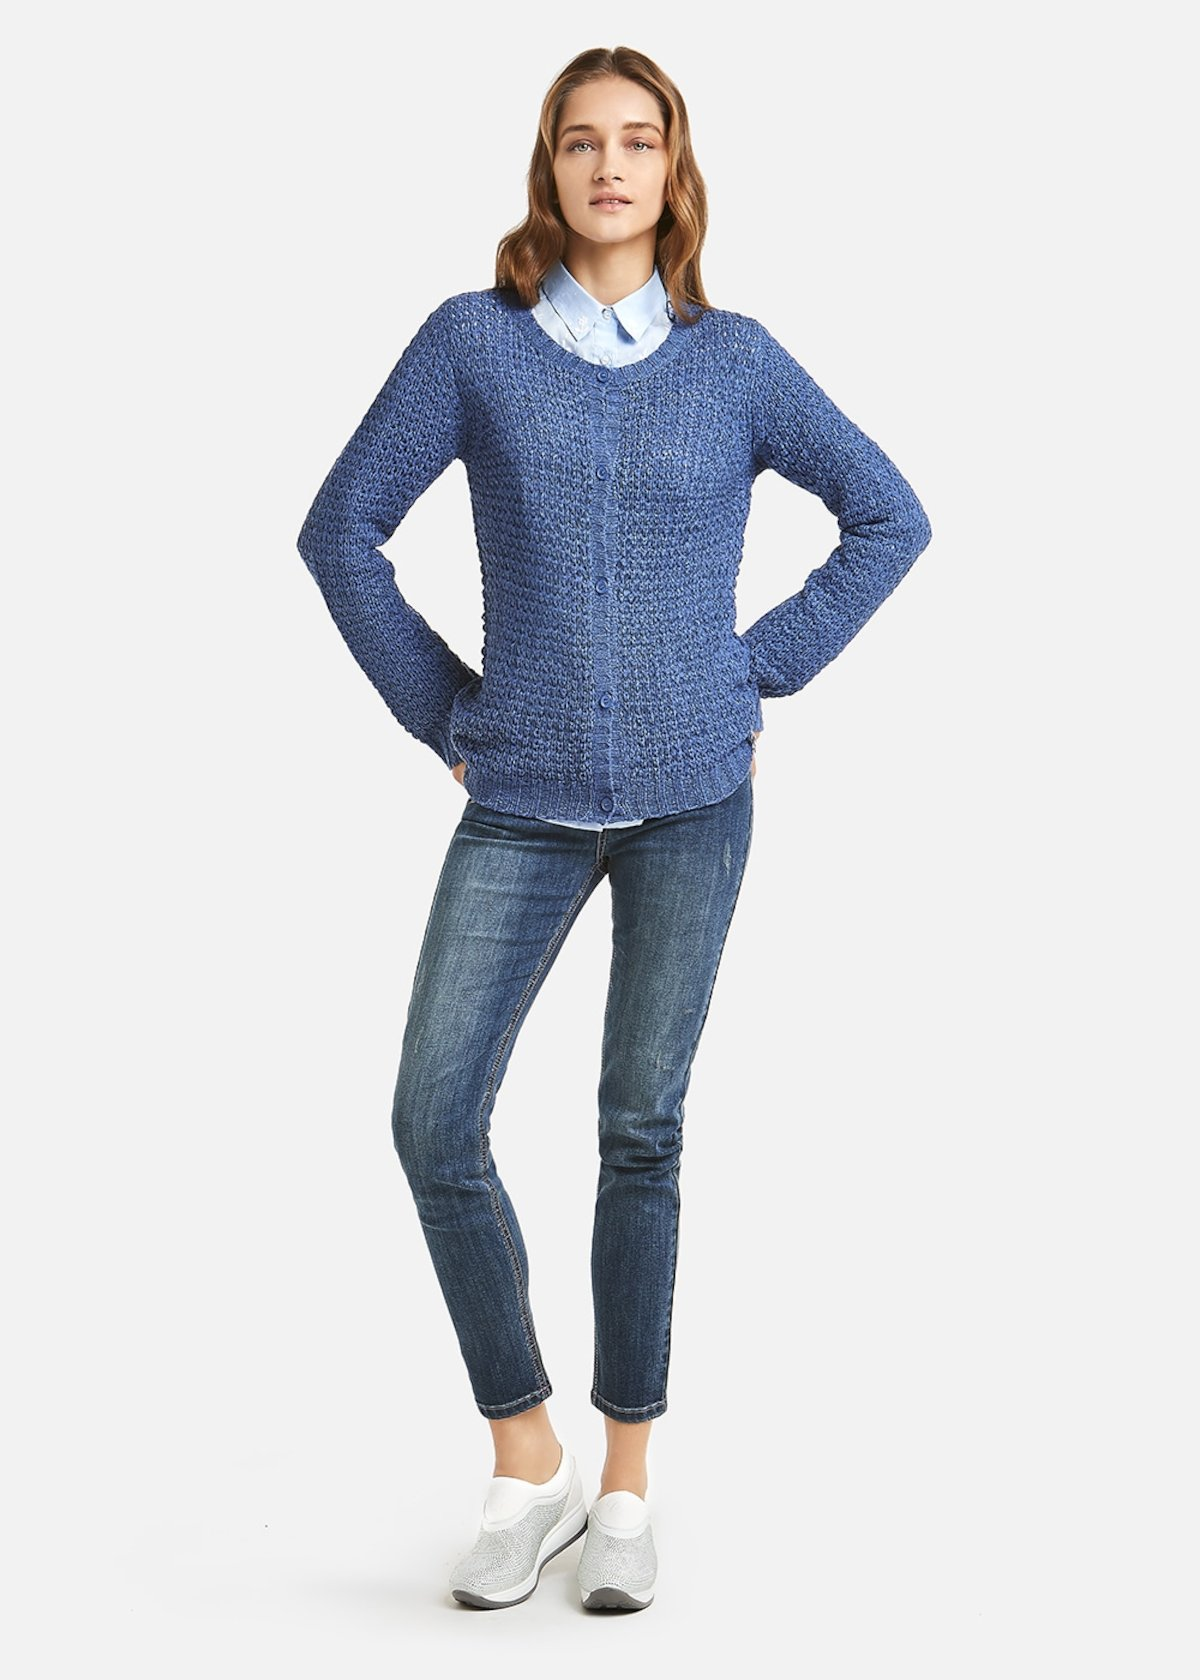 Honeycomb Clark Cardigan - Blue